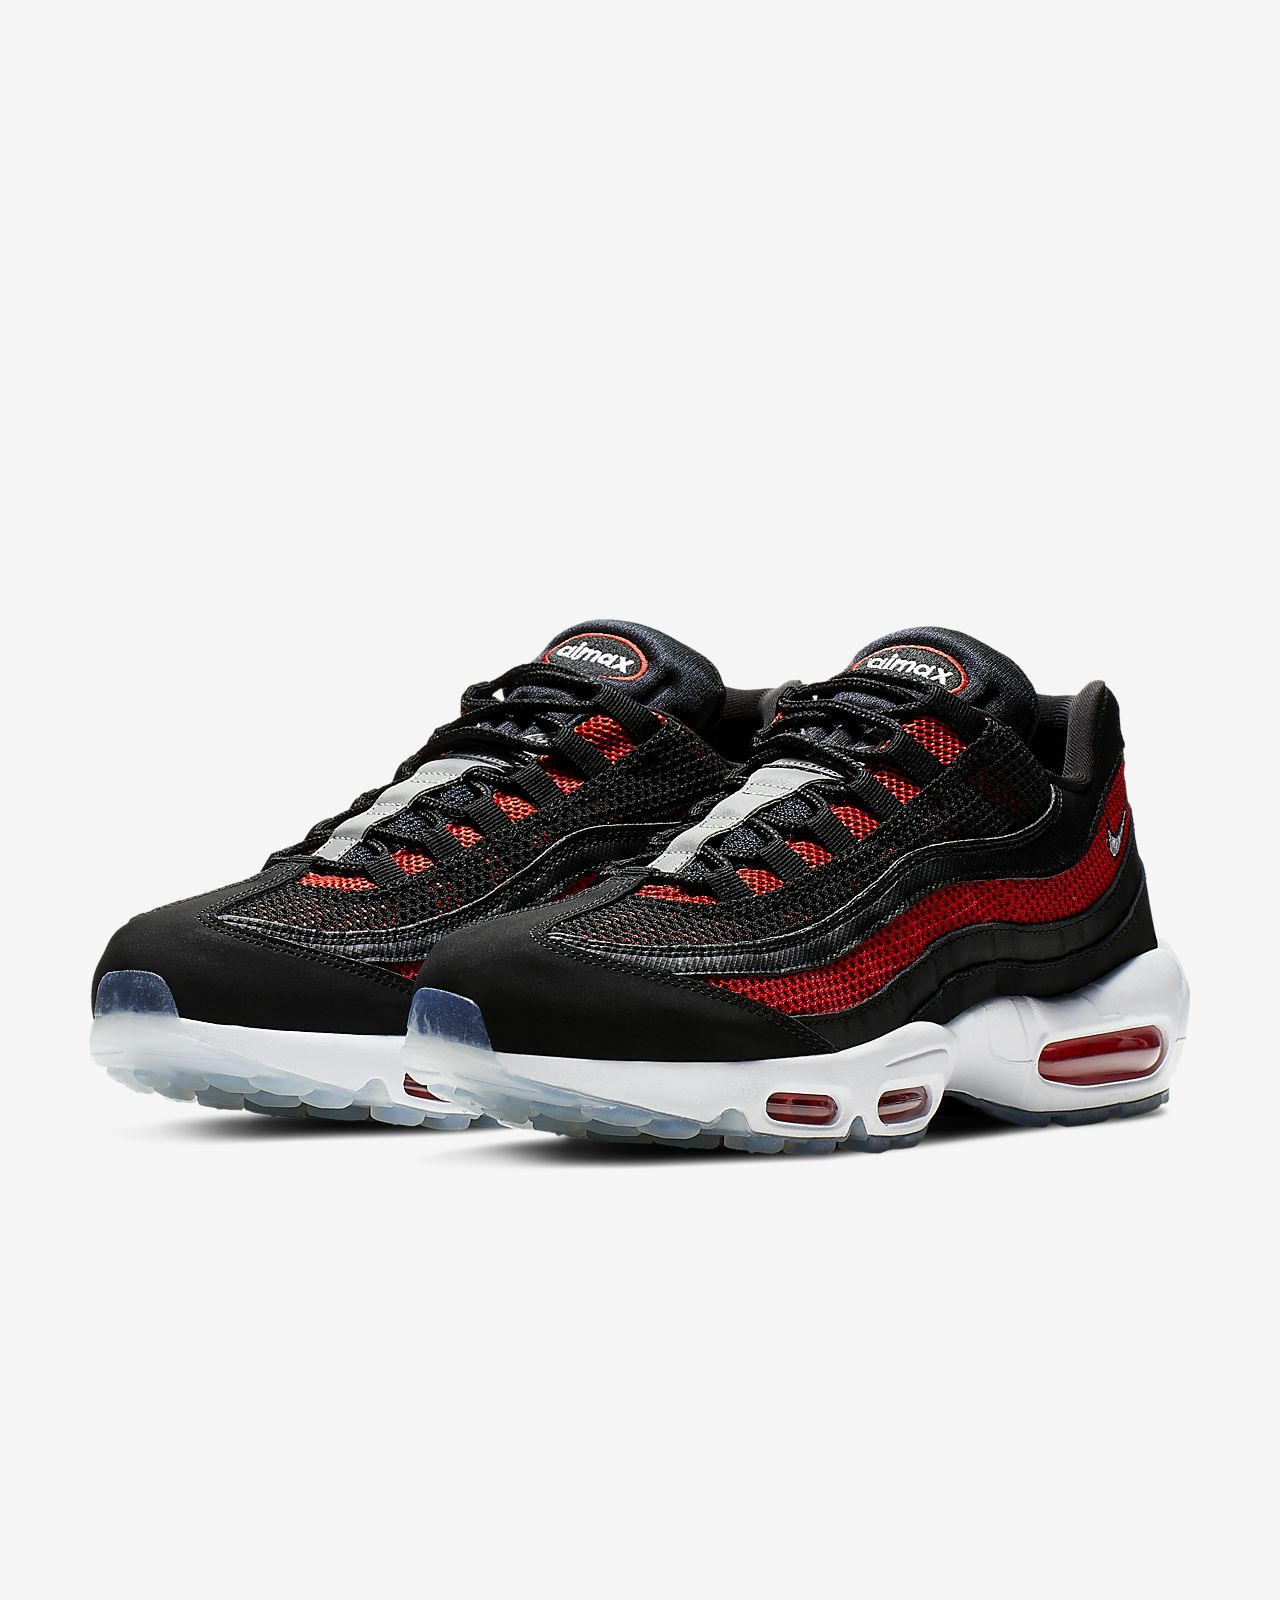 online retailer 3bfdf 6bdfa ... Nike Air Max 95 Essential Men s Shoe